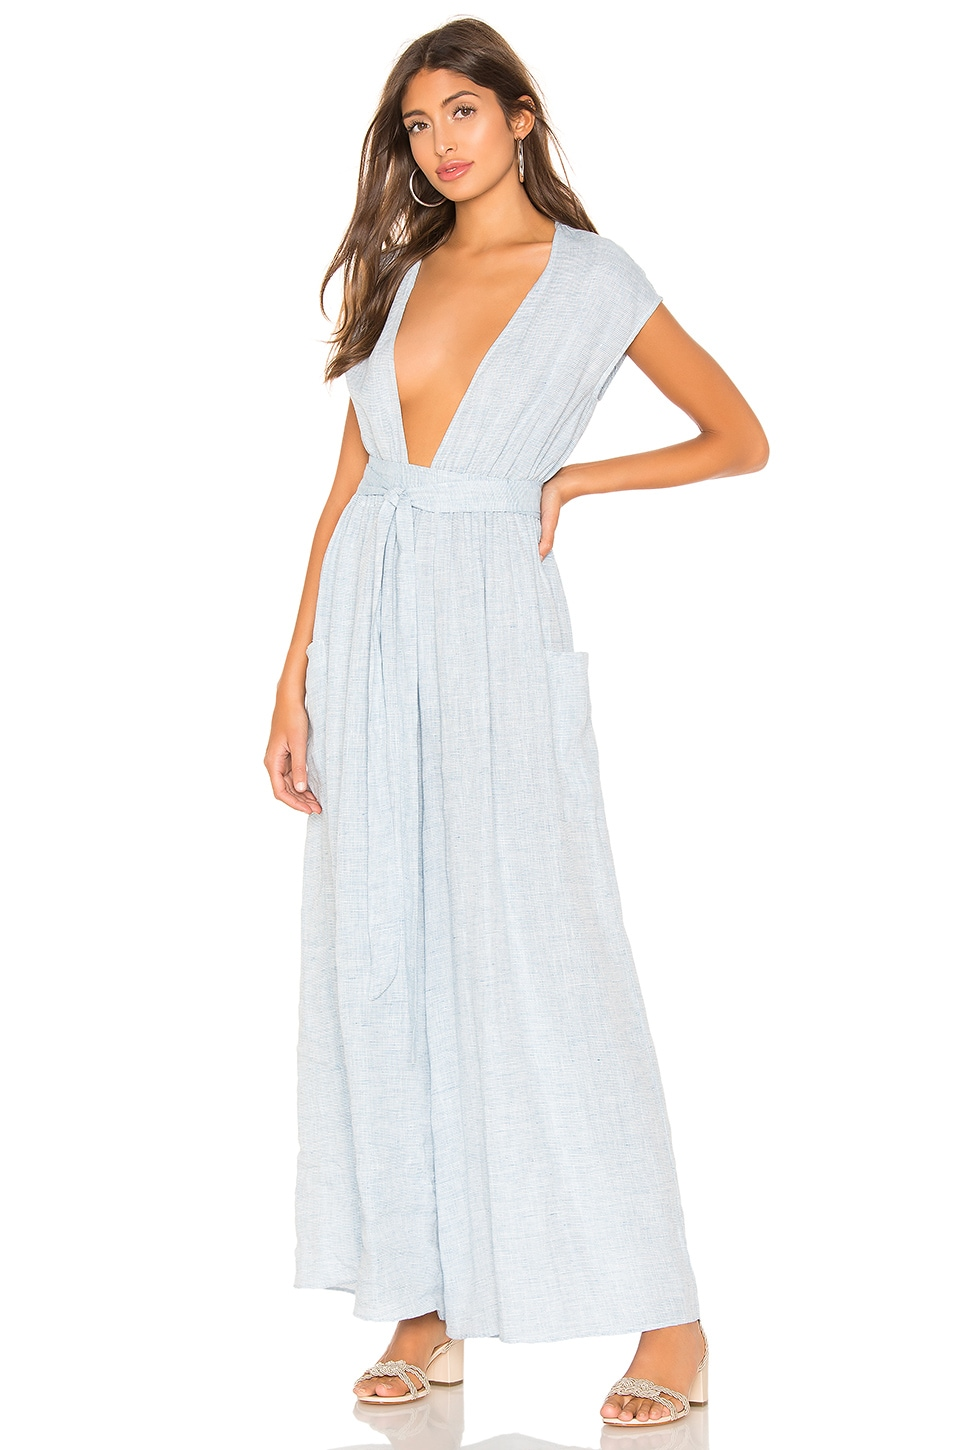 Mara Hoffman Whitney Jumpsuit in White Blue